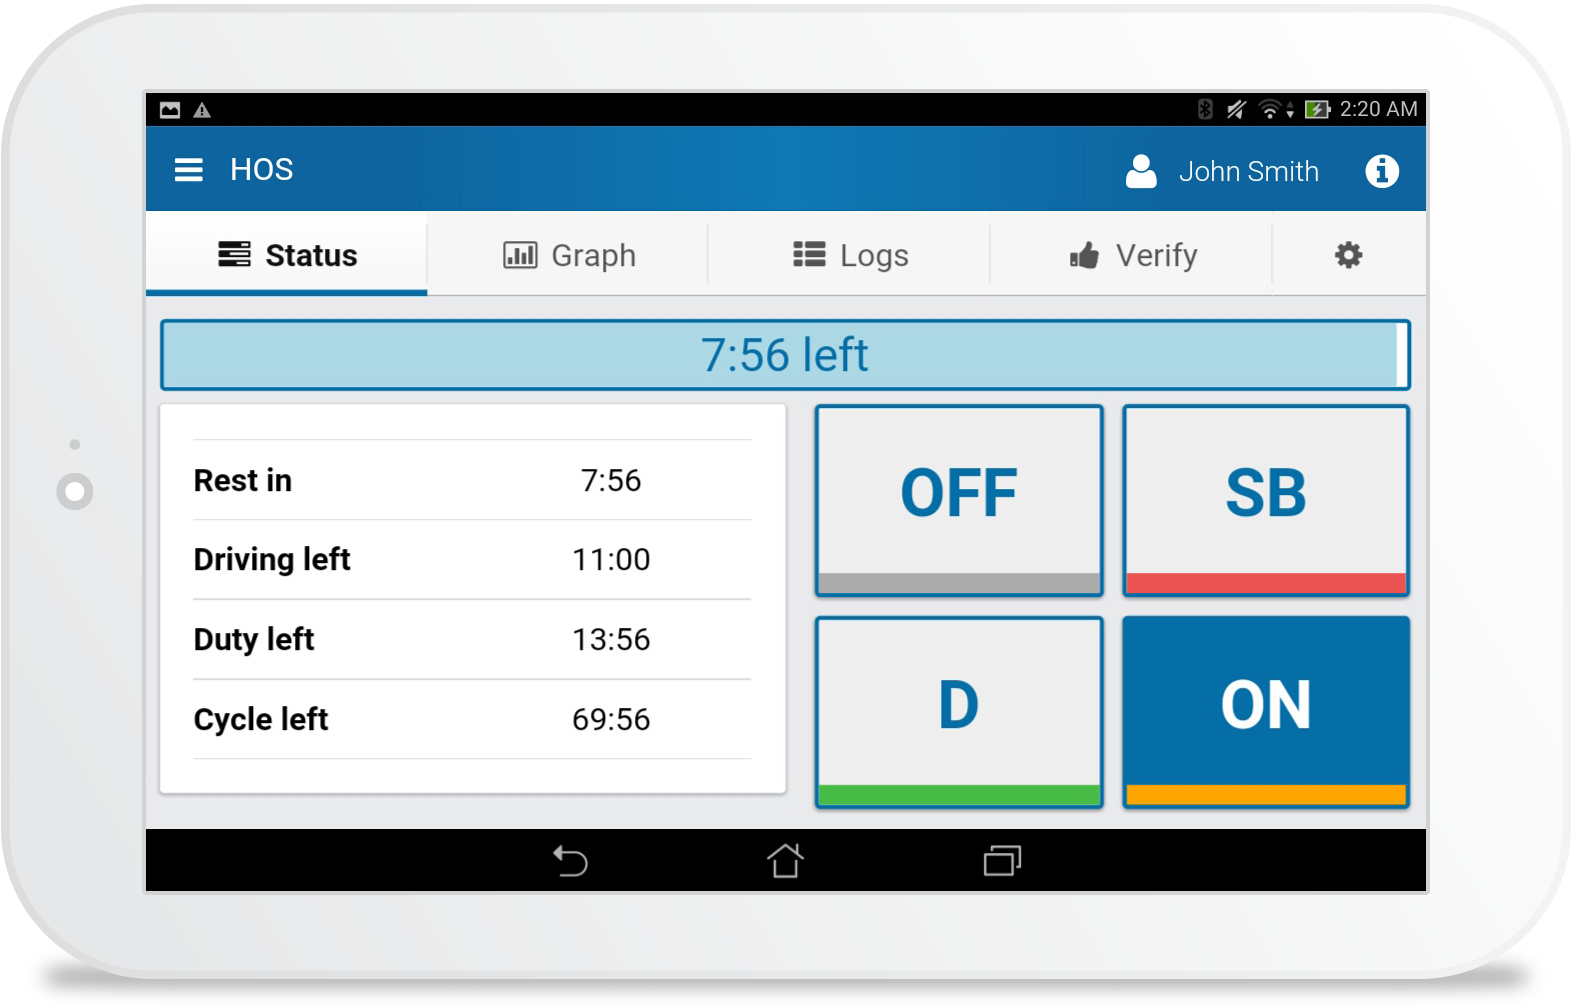 Hours of Services (HOS) on Tablet